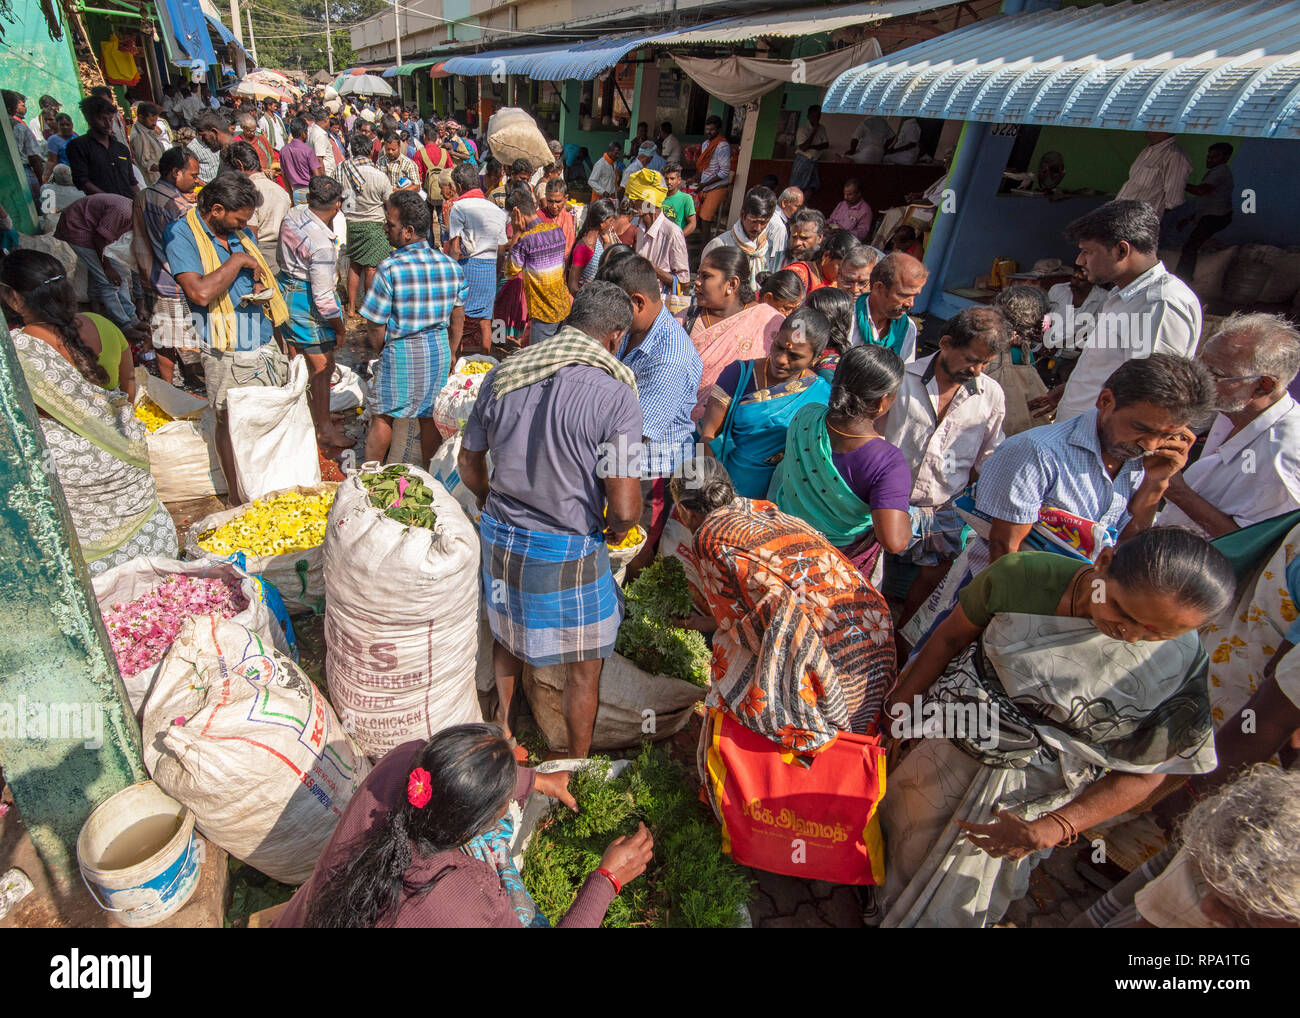 A view showing busy bustling people, locals trading buying selling of flowers at the Madurai flower market in India. - Stock Image